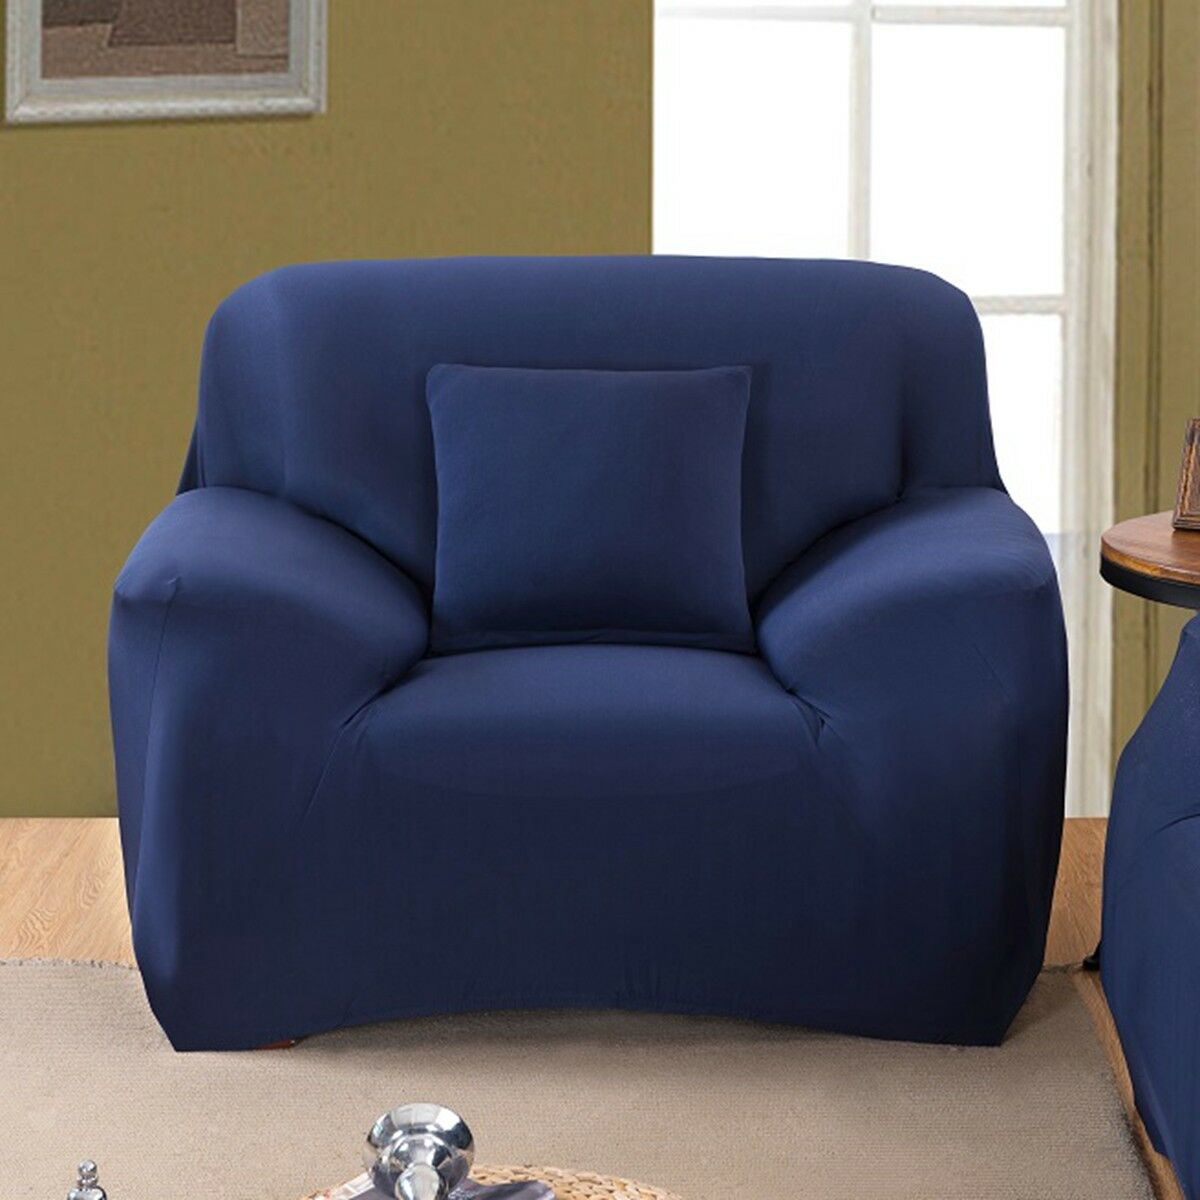 EASY-Stretch-Couch-Sofa-Lounge-Covers-Recliner-1-2-3-Seater-Dining-Chair-Cover thumbnail 70